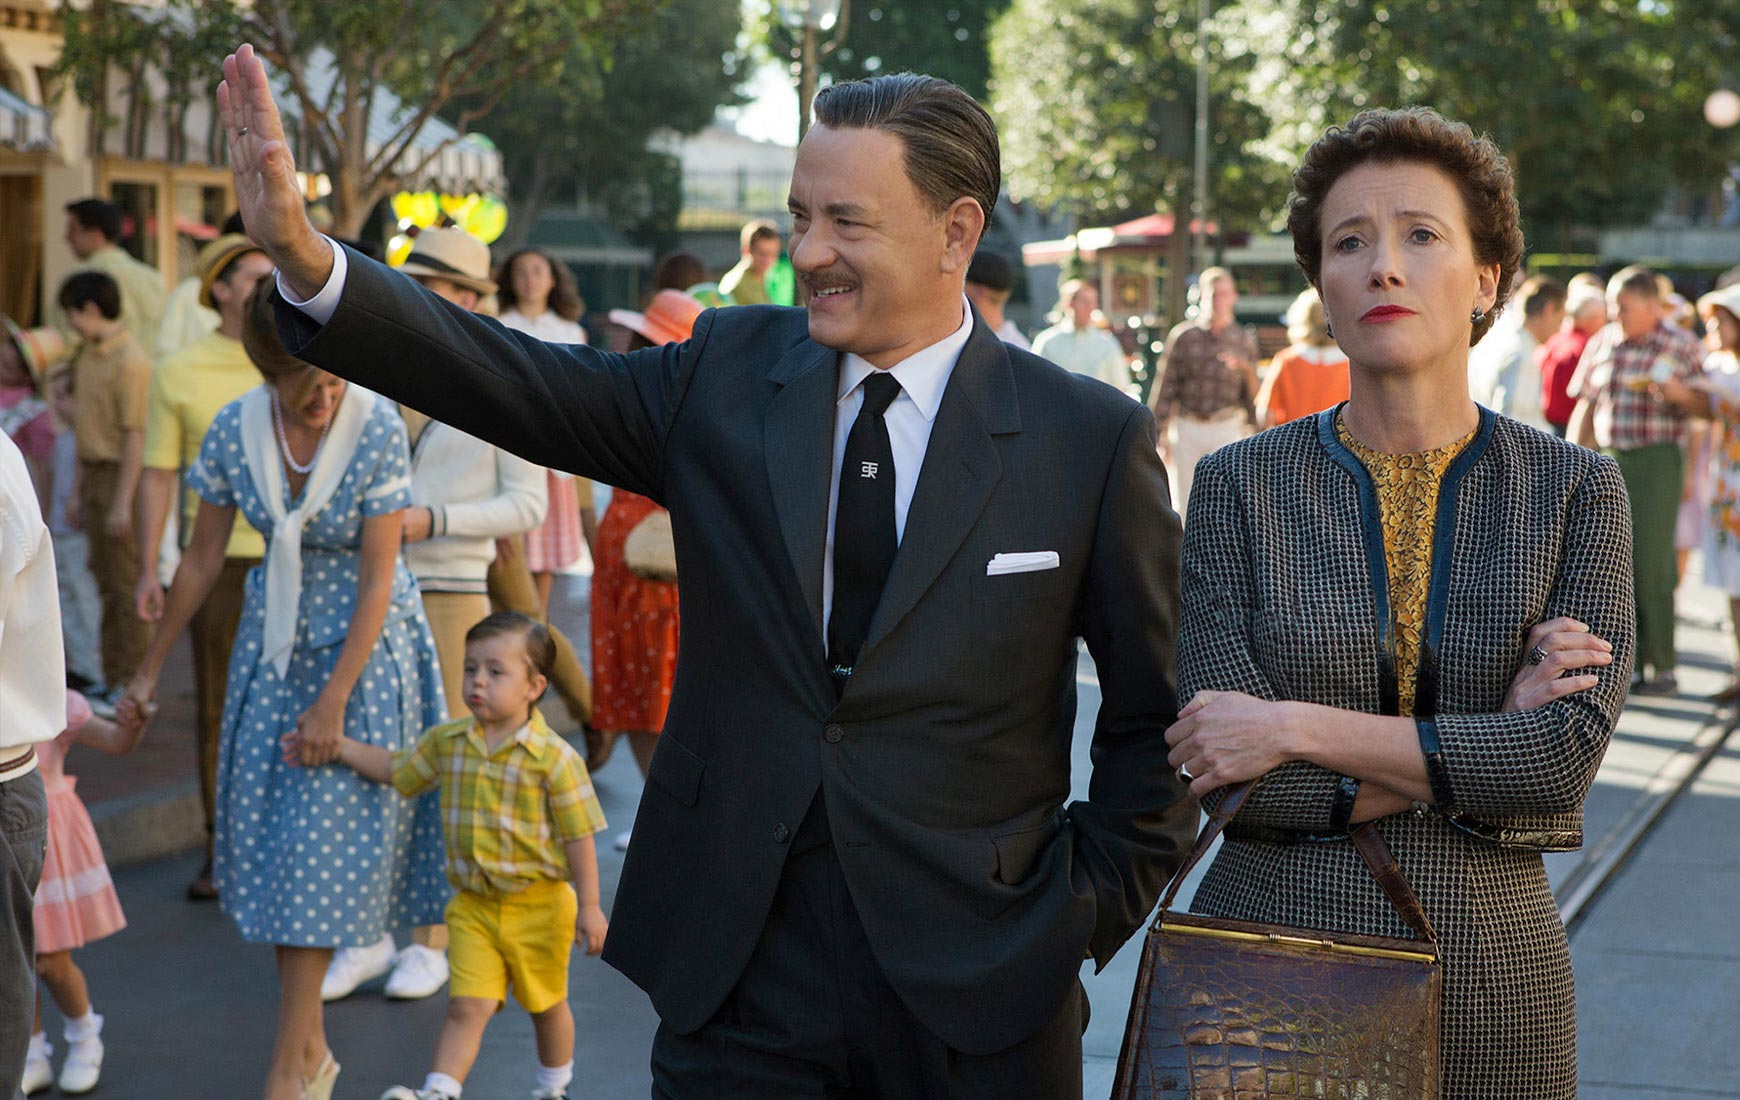 Tom Hanks as Walt Disney and Emma Thompson as P.L. Travers